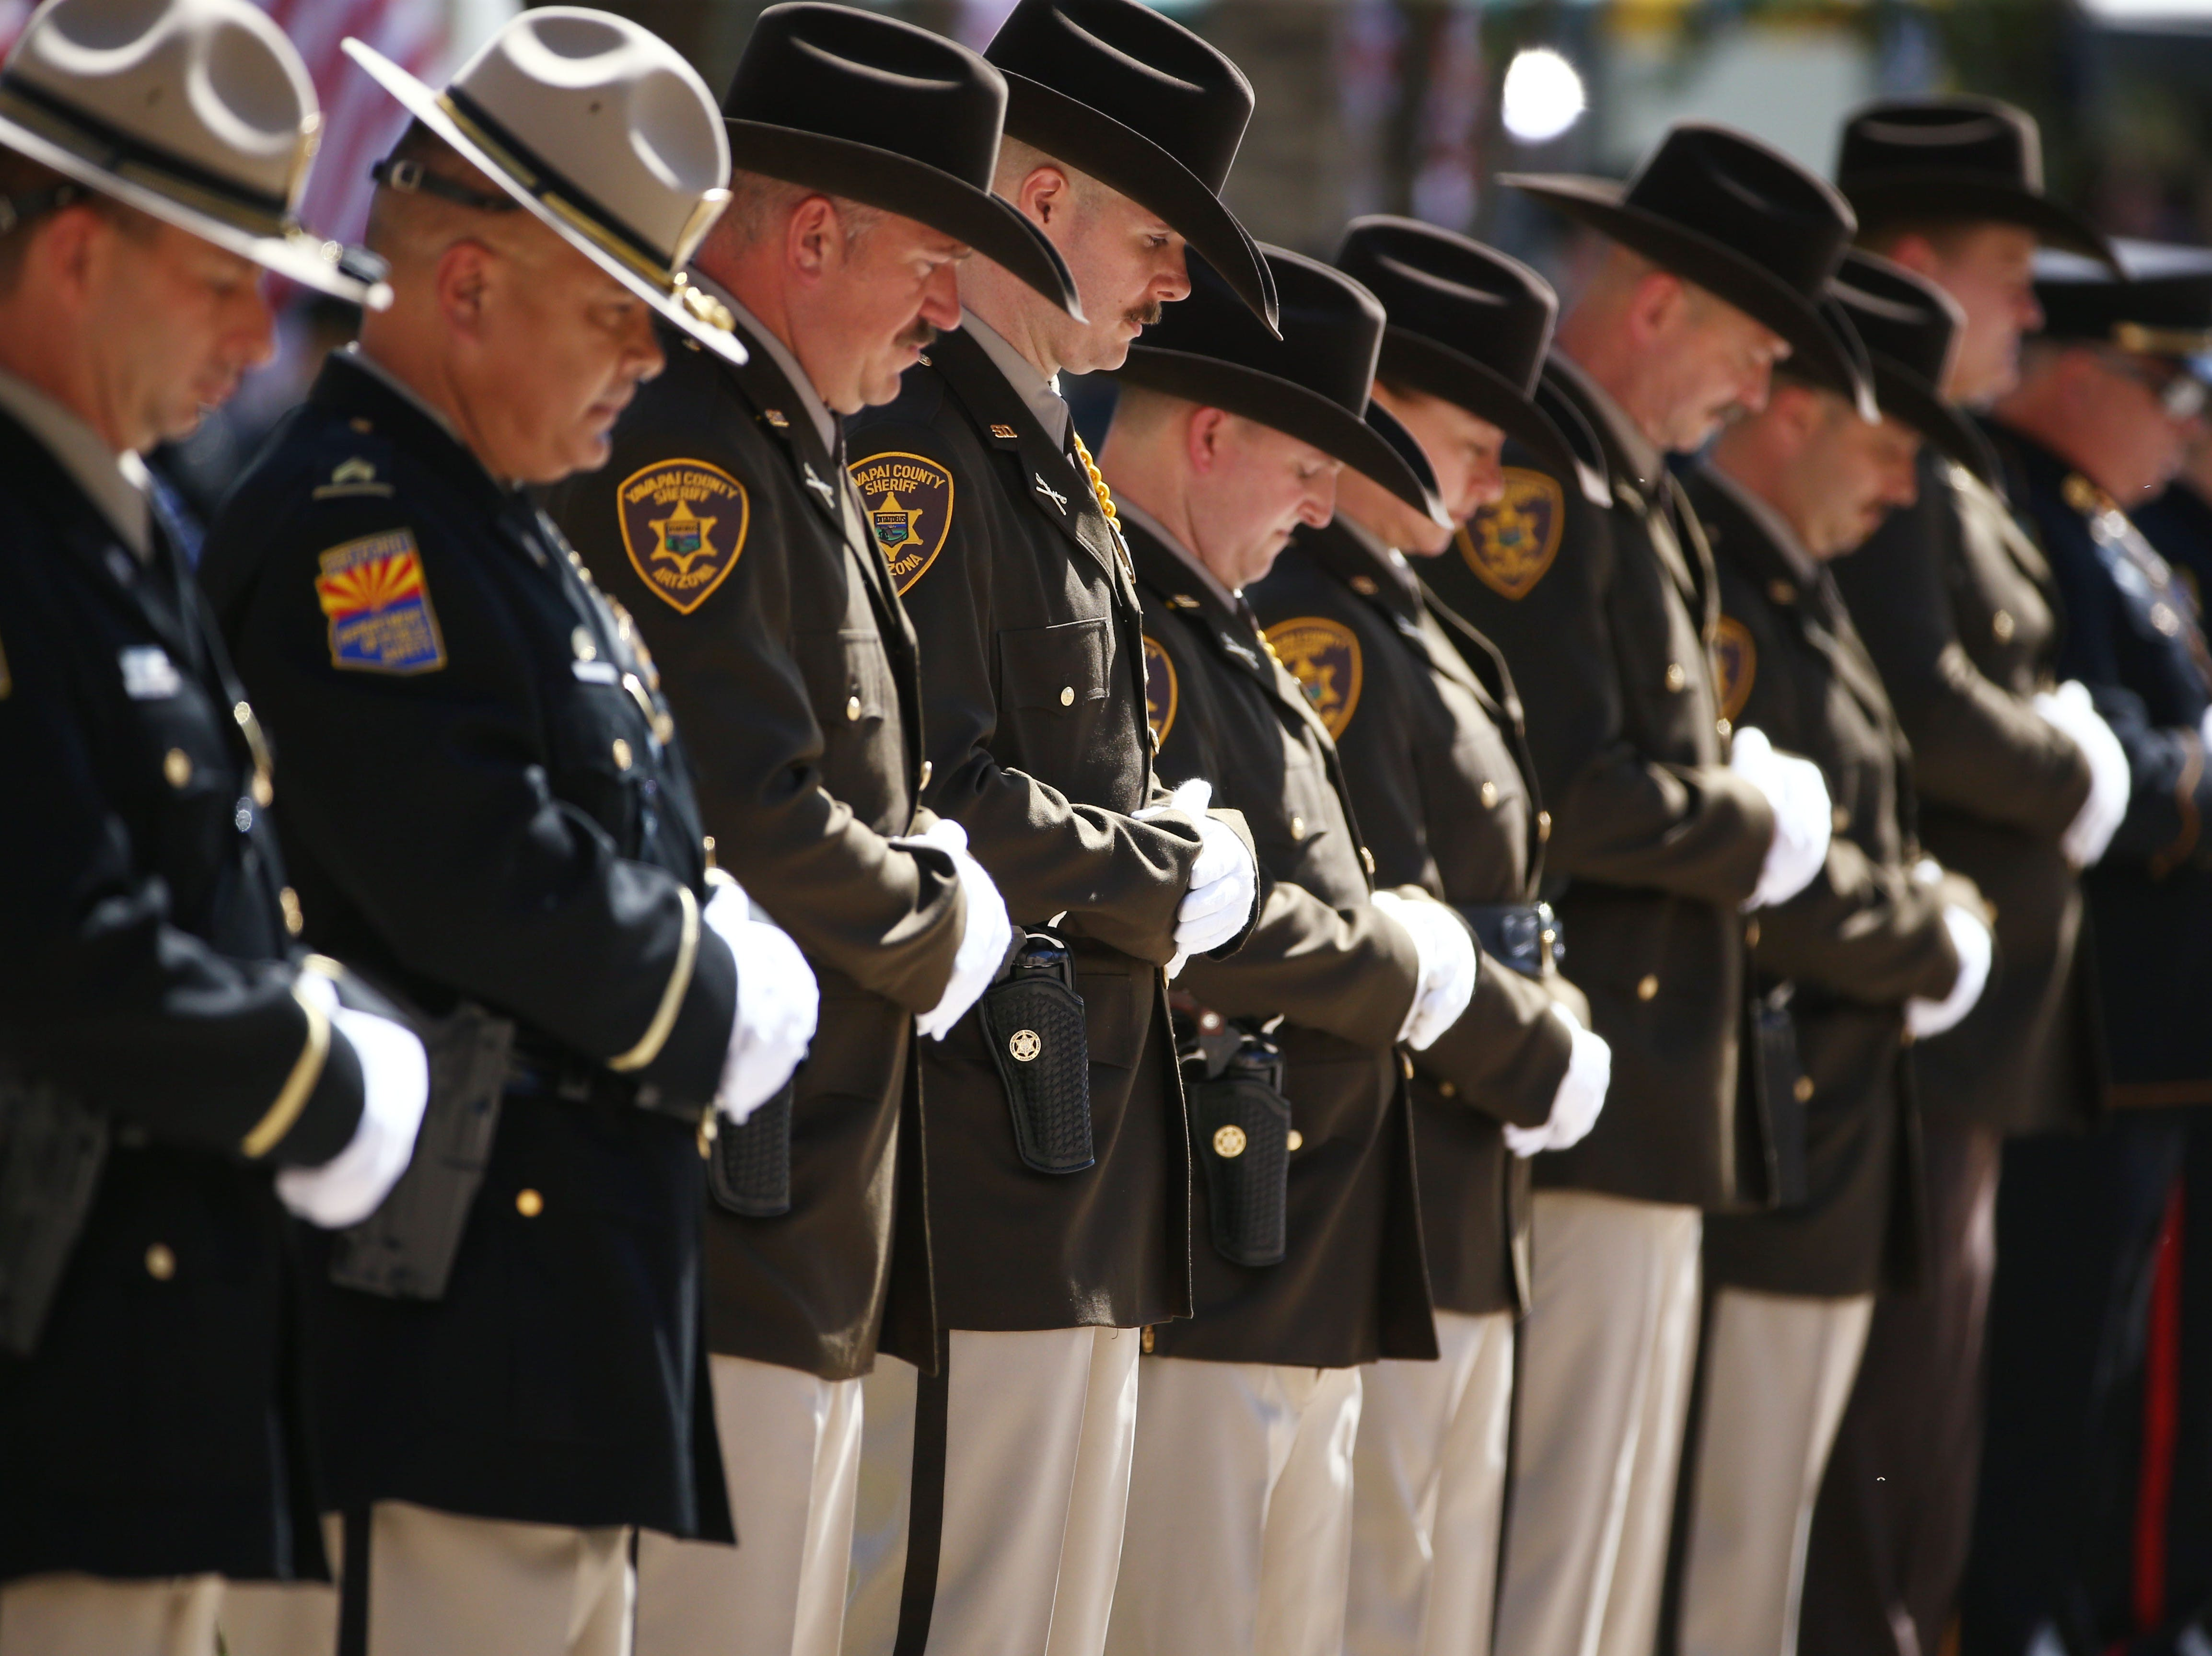 Officers line the plaza as the casket of U.S. Sen. John McCain arrives for his memorial service at the Arizona State Capitol.